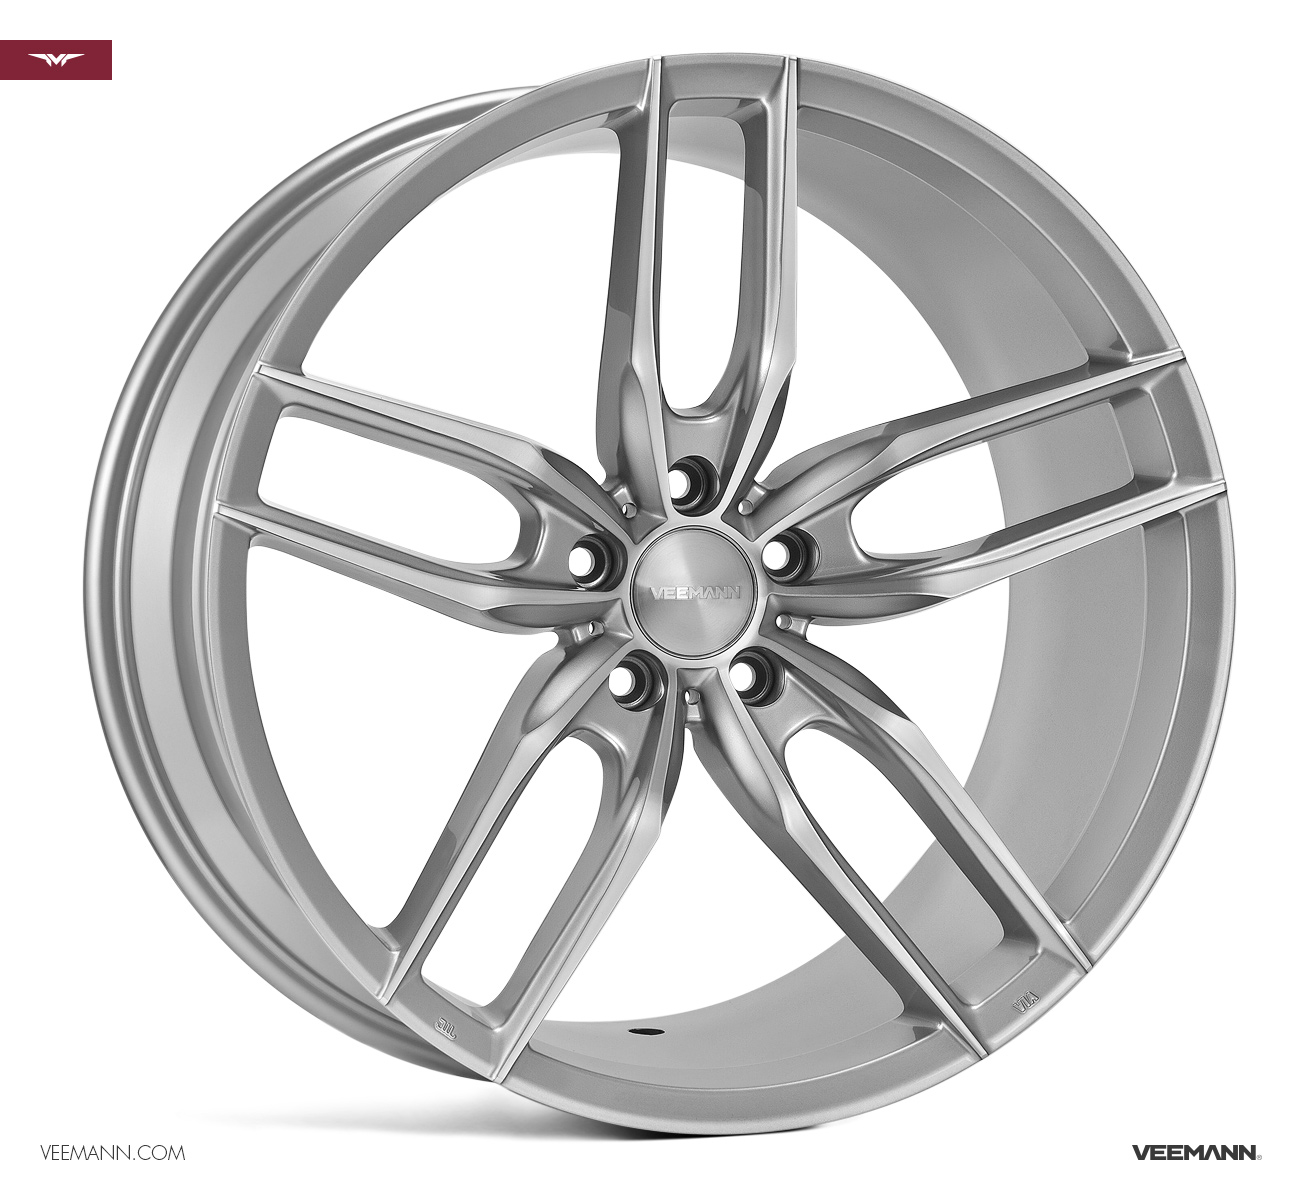 "NEW 19"" VEEMANN V-FS28 ALLOYS IN SILVER POL WITH WIDER 9.5"" REARS"